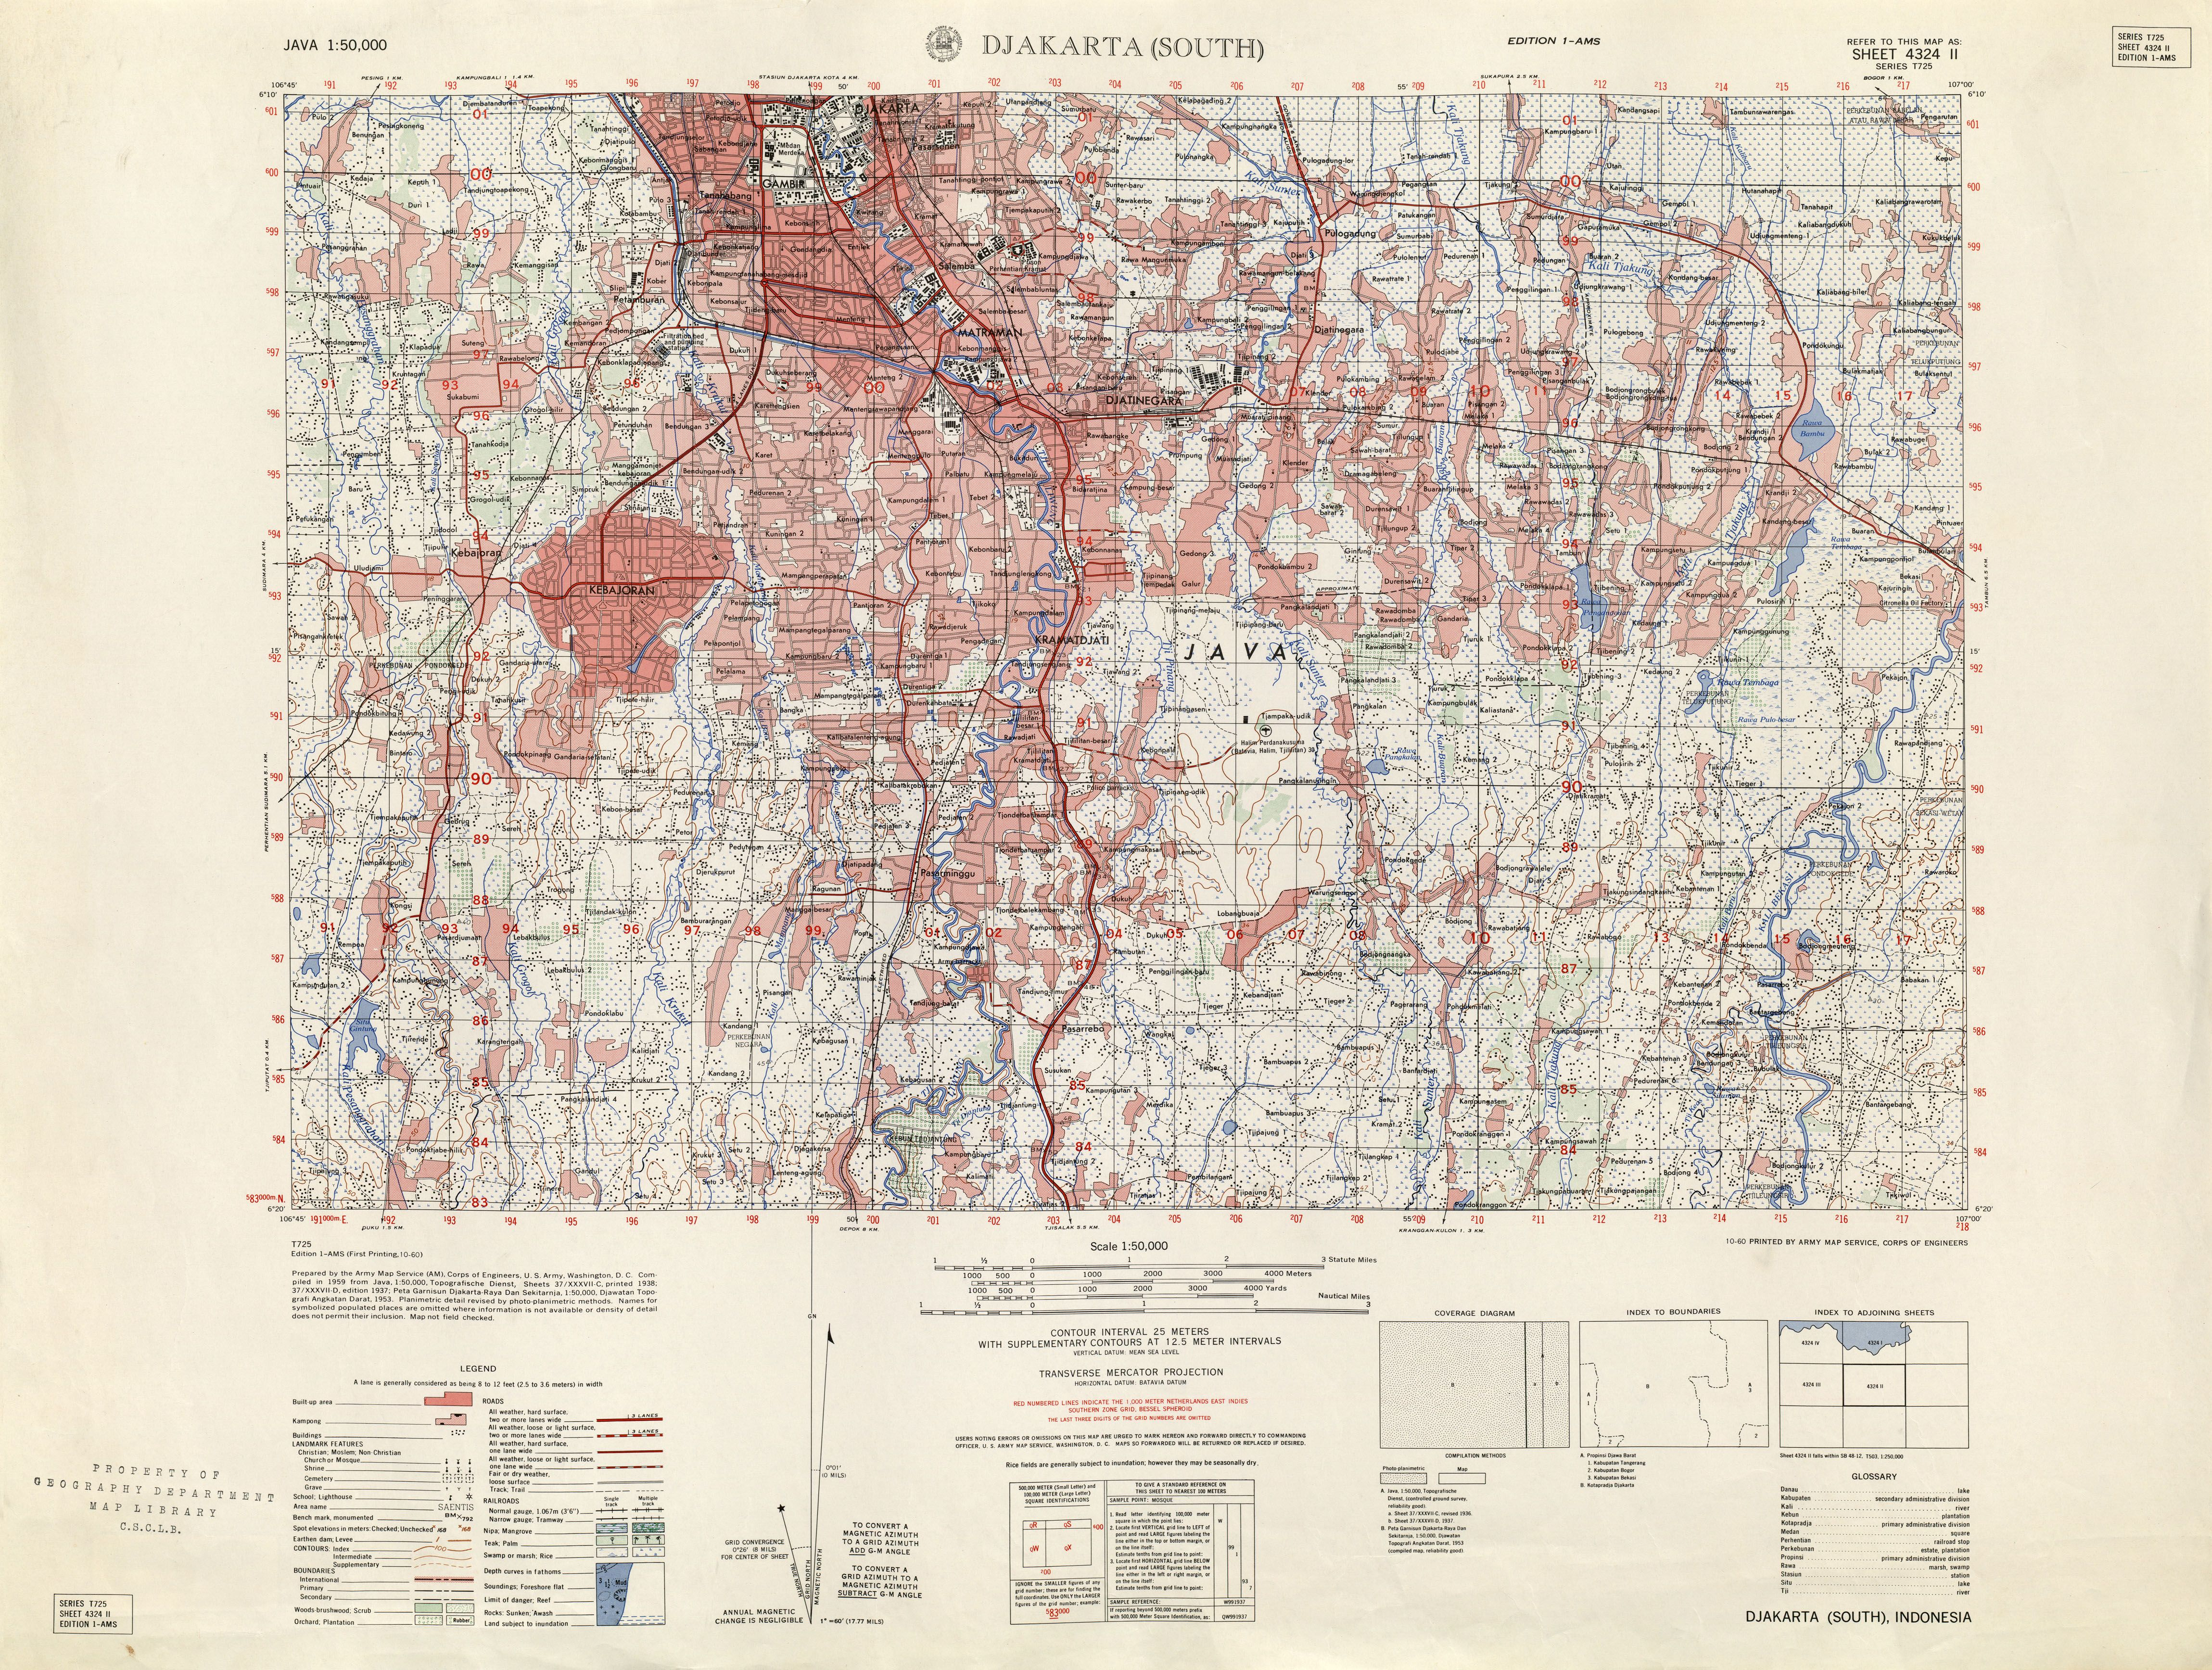 Jakarta 1953 By the Army Map Service